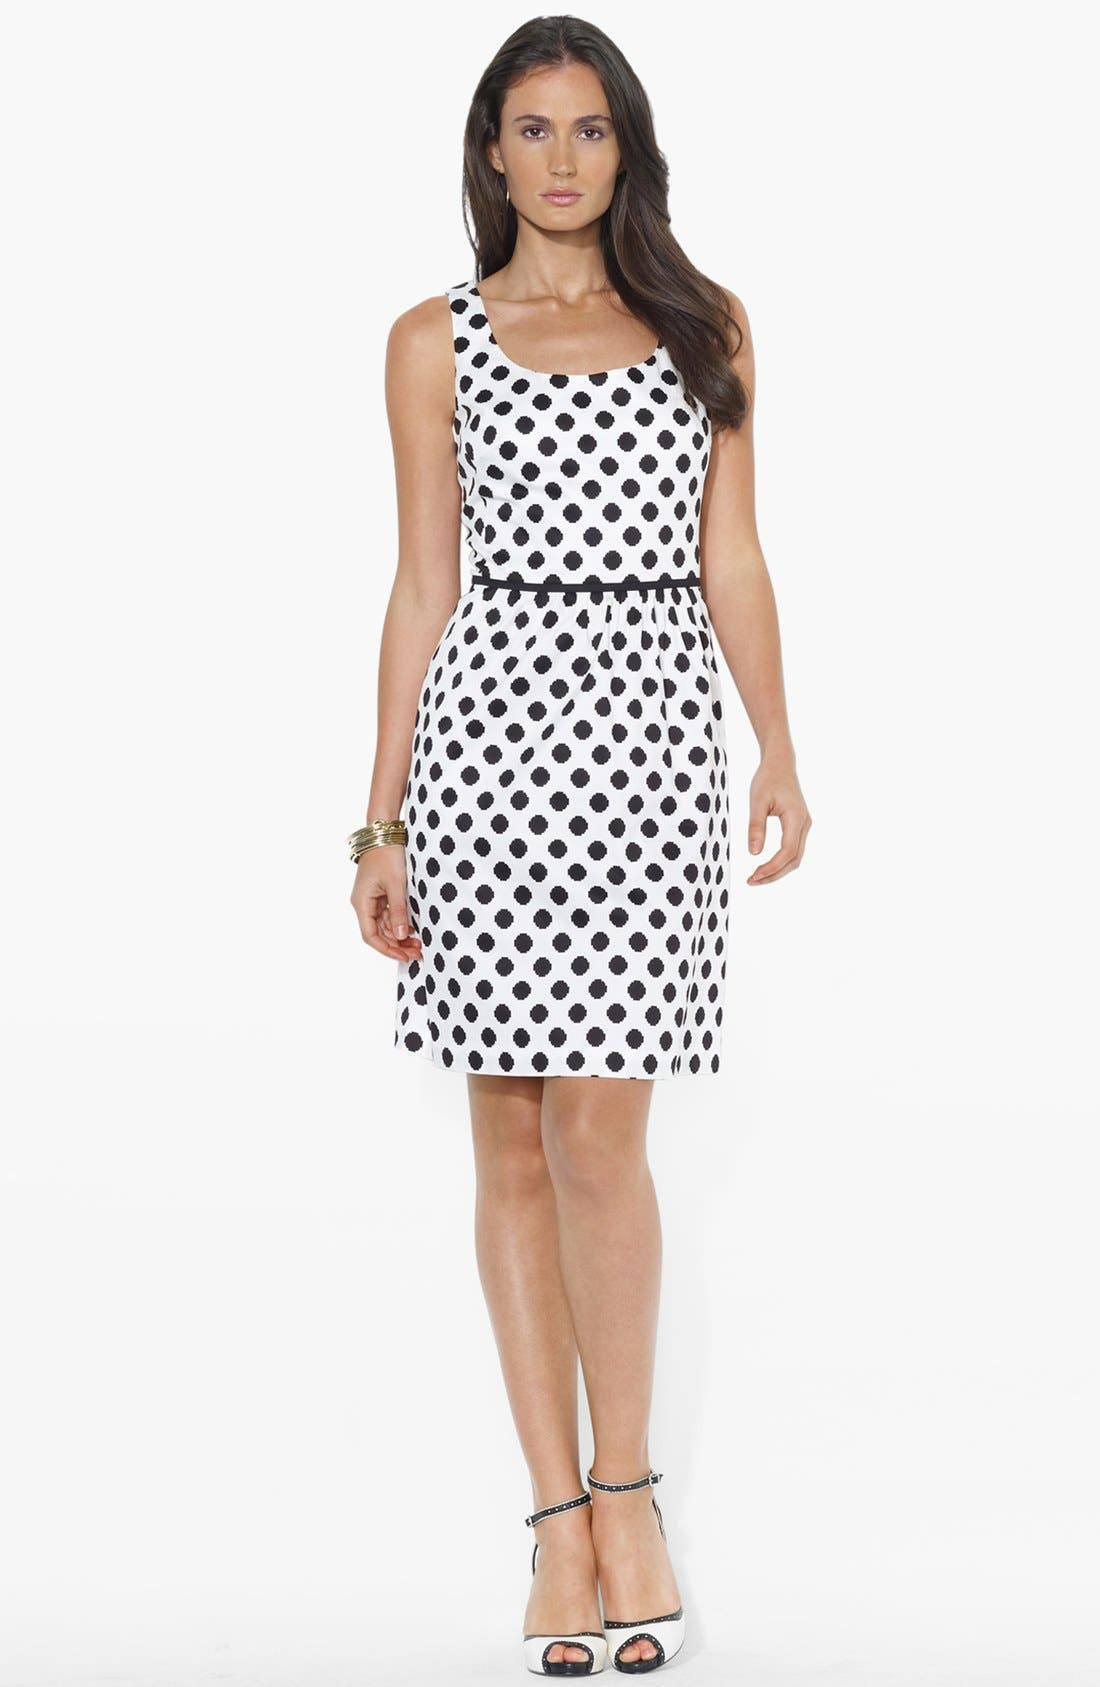 Main Image - Lauren Ralph Lauren Polka Dot Fit & Flare Dress